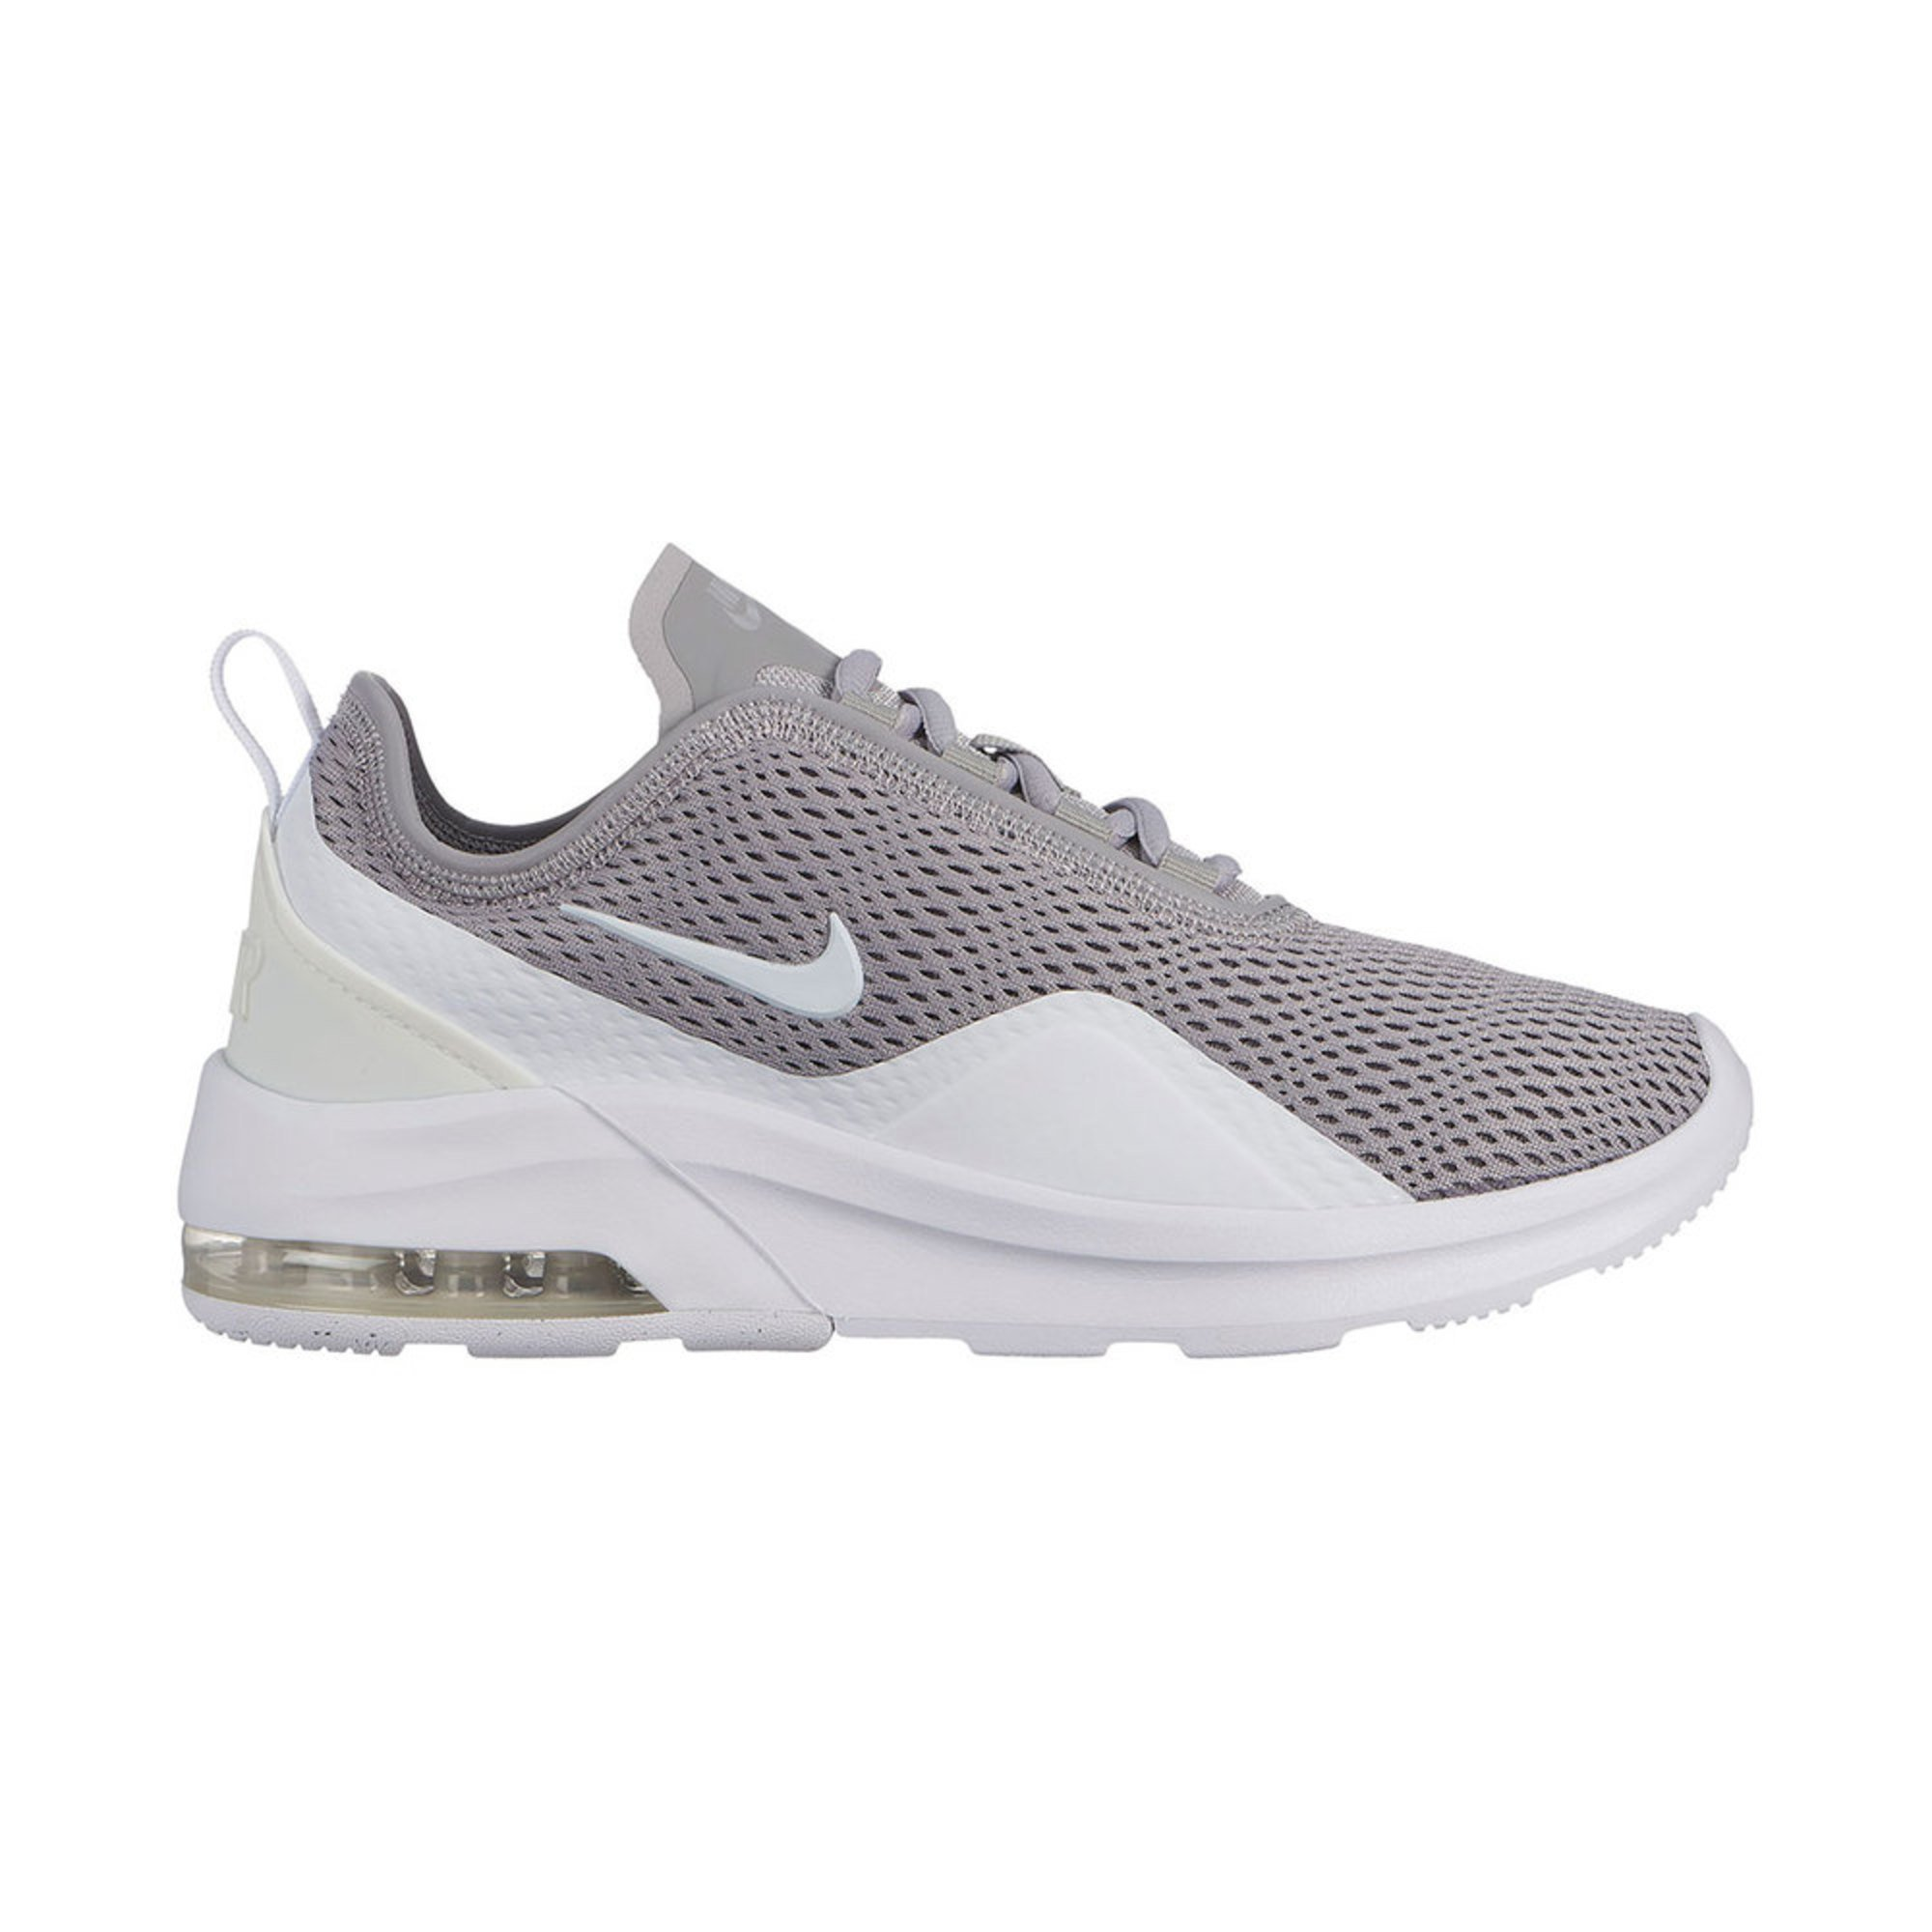 finest selection 3a893 7e1b5 Nike. Nike Women s Air Max Motion 2 ...